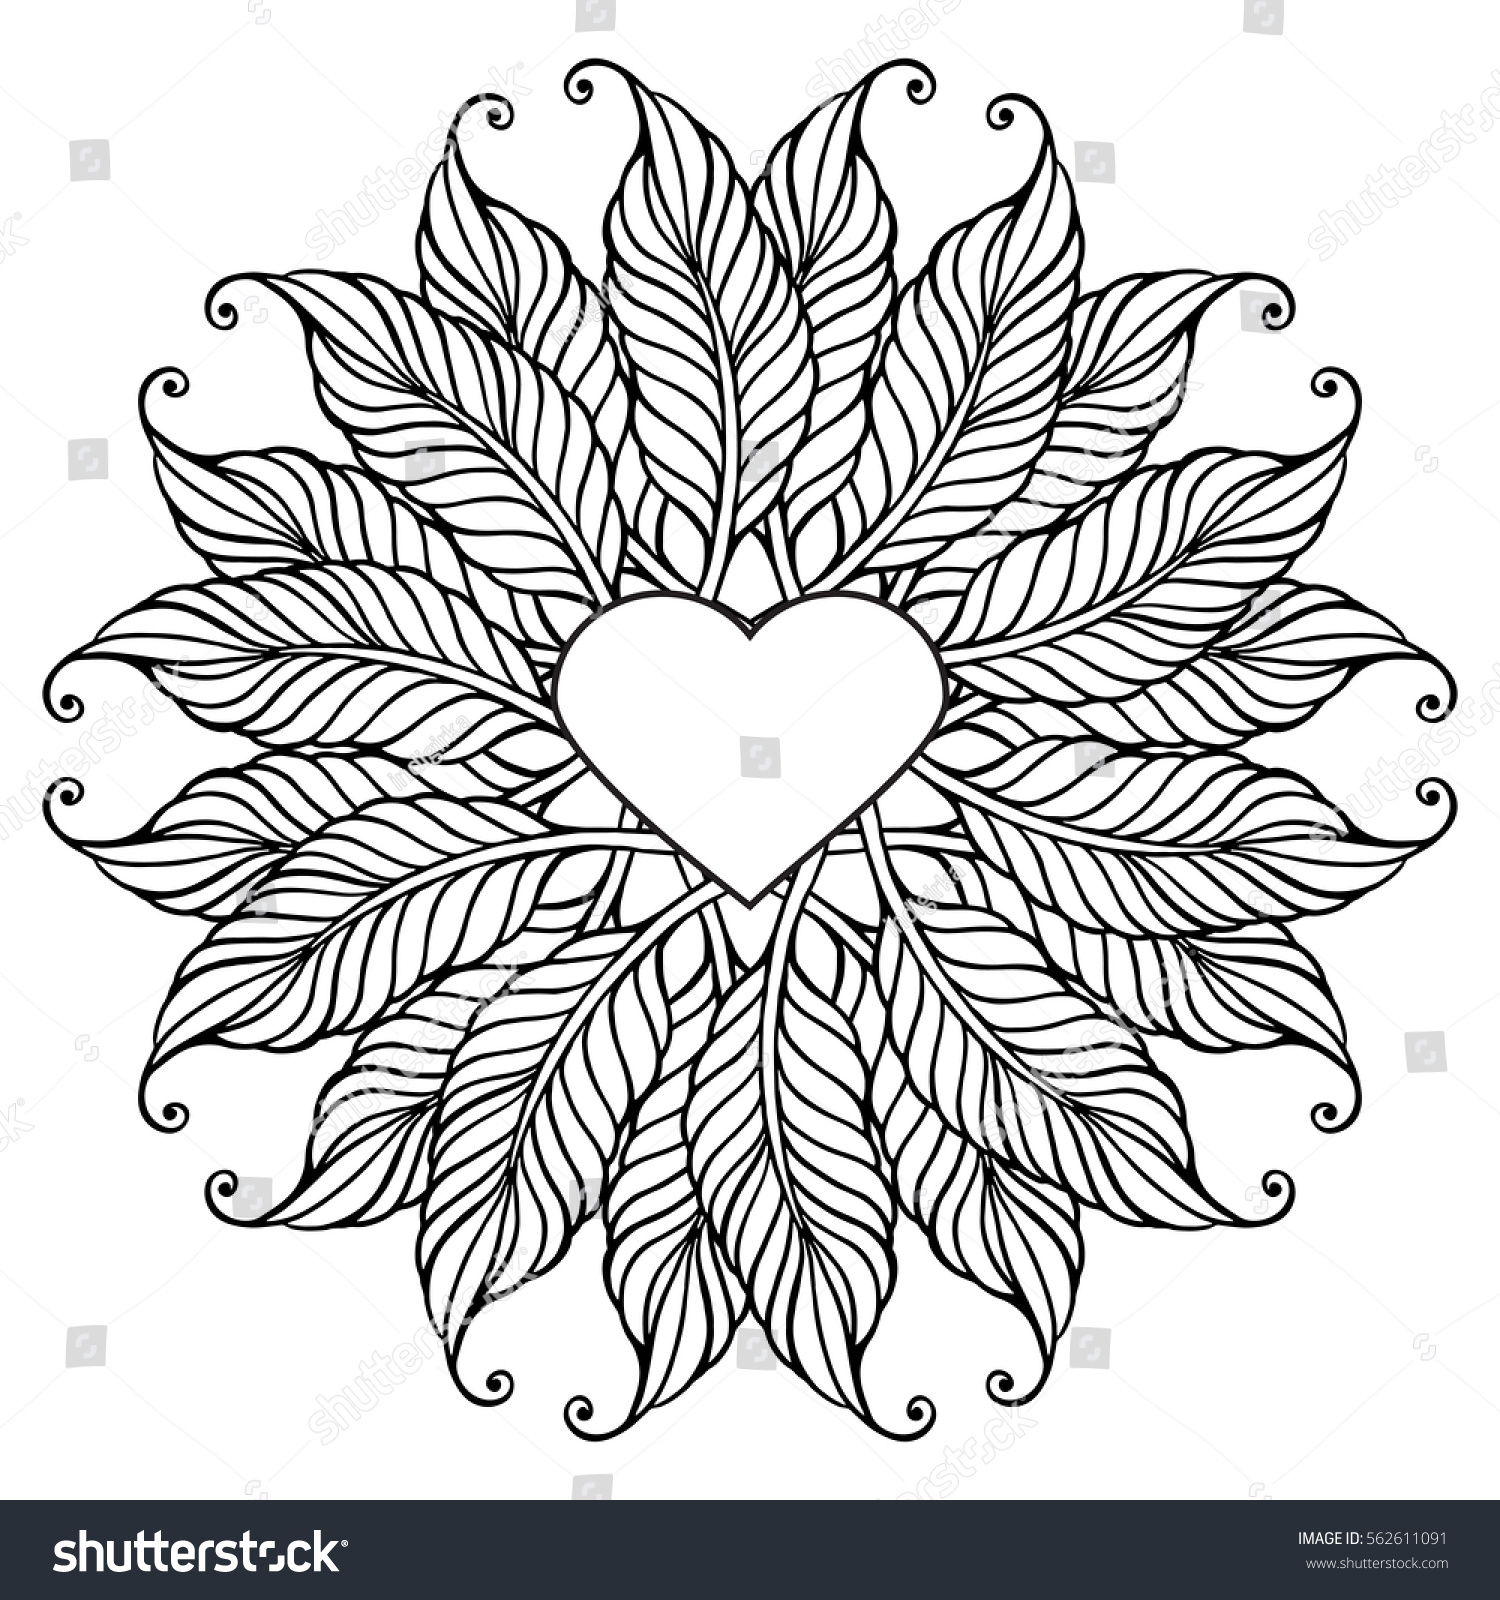 Coloring Page Adult Older Children Bohemian Stock Vector (Royalty ...